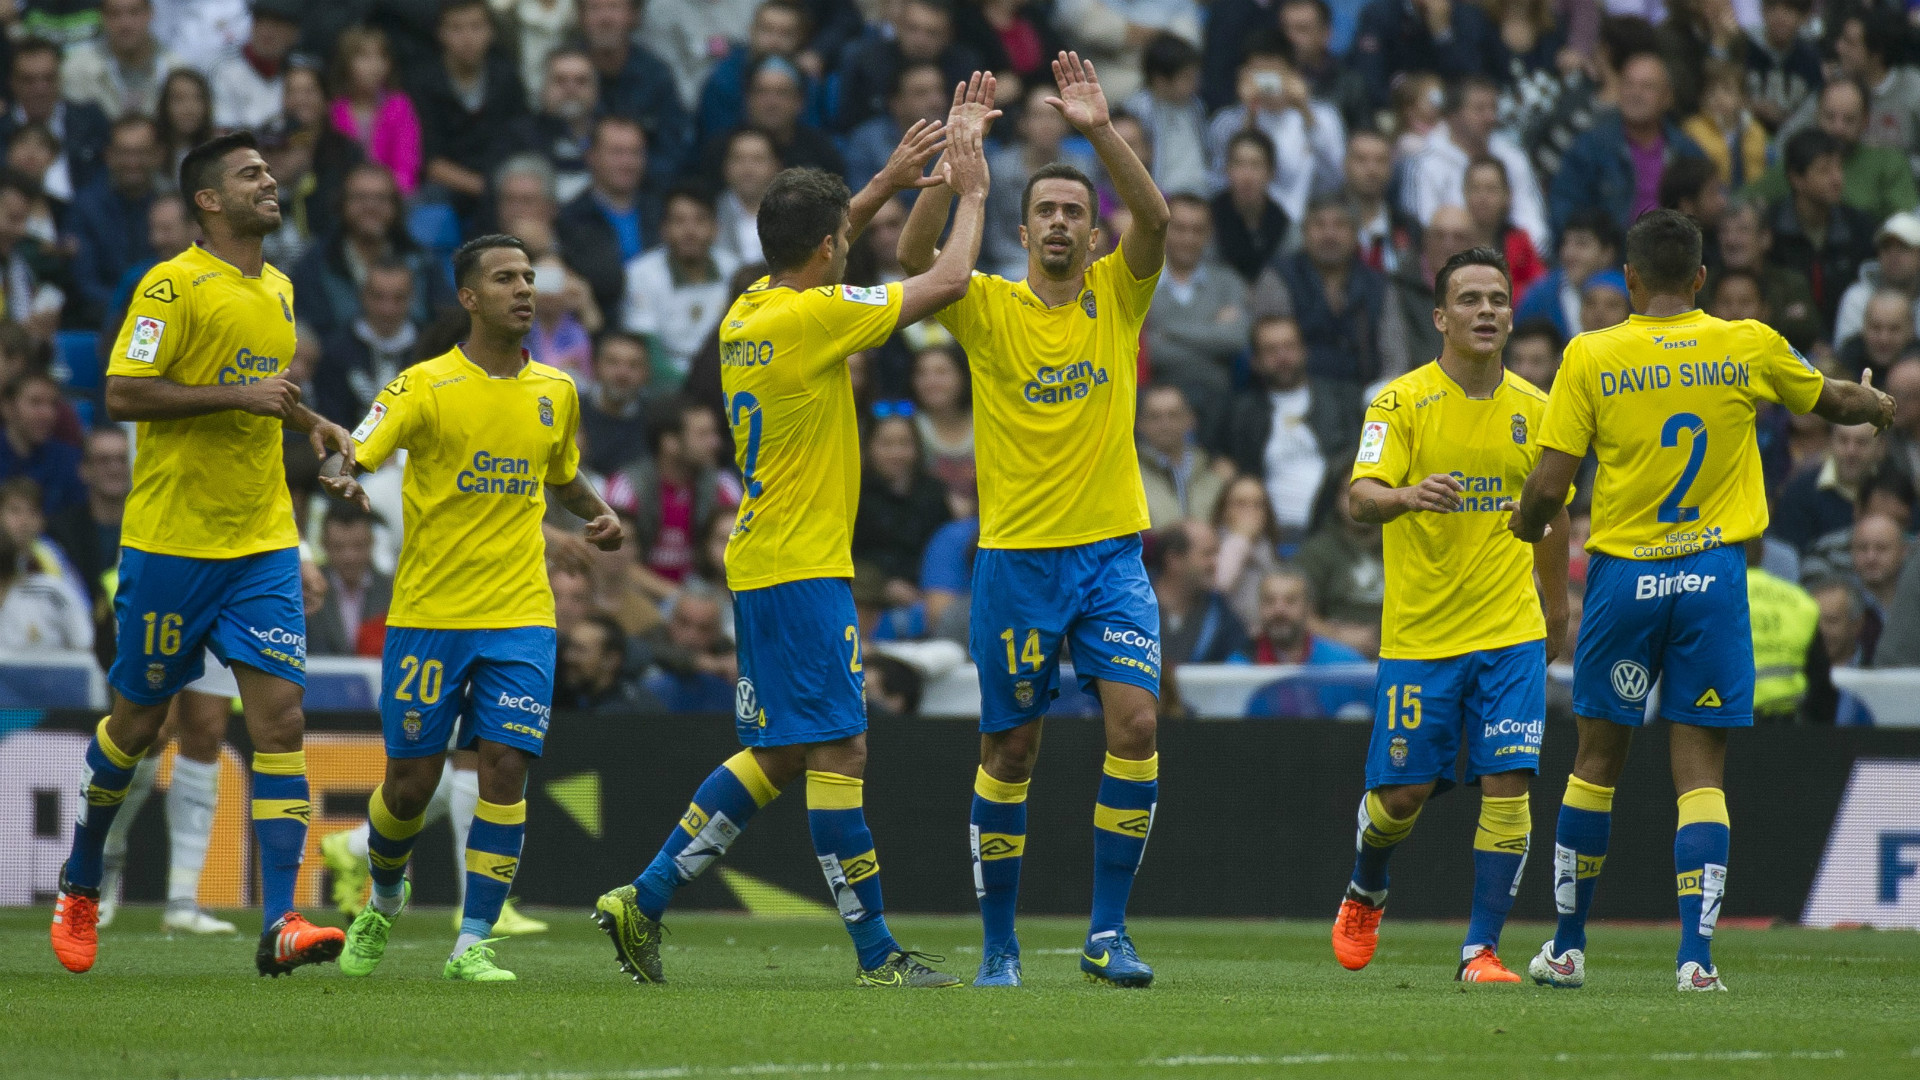 Video: Real Sociedad vs Las Palmas